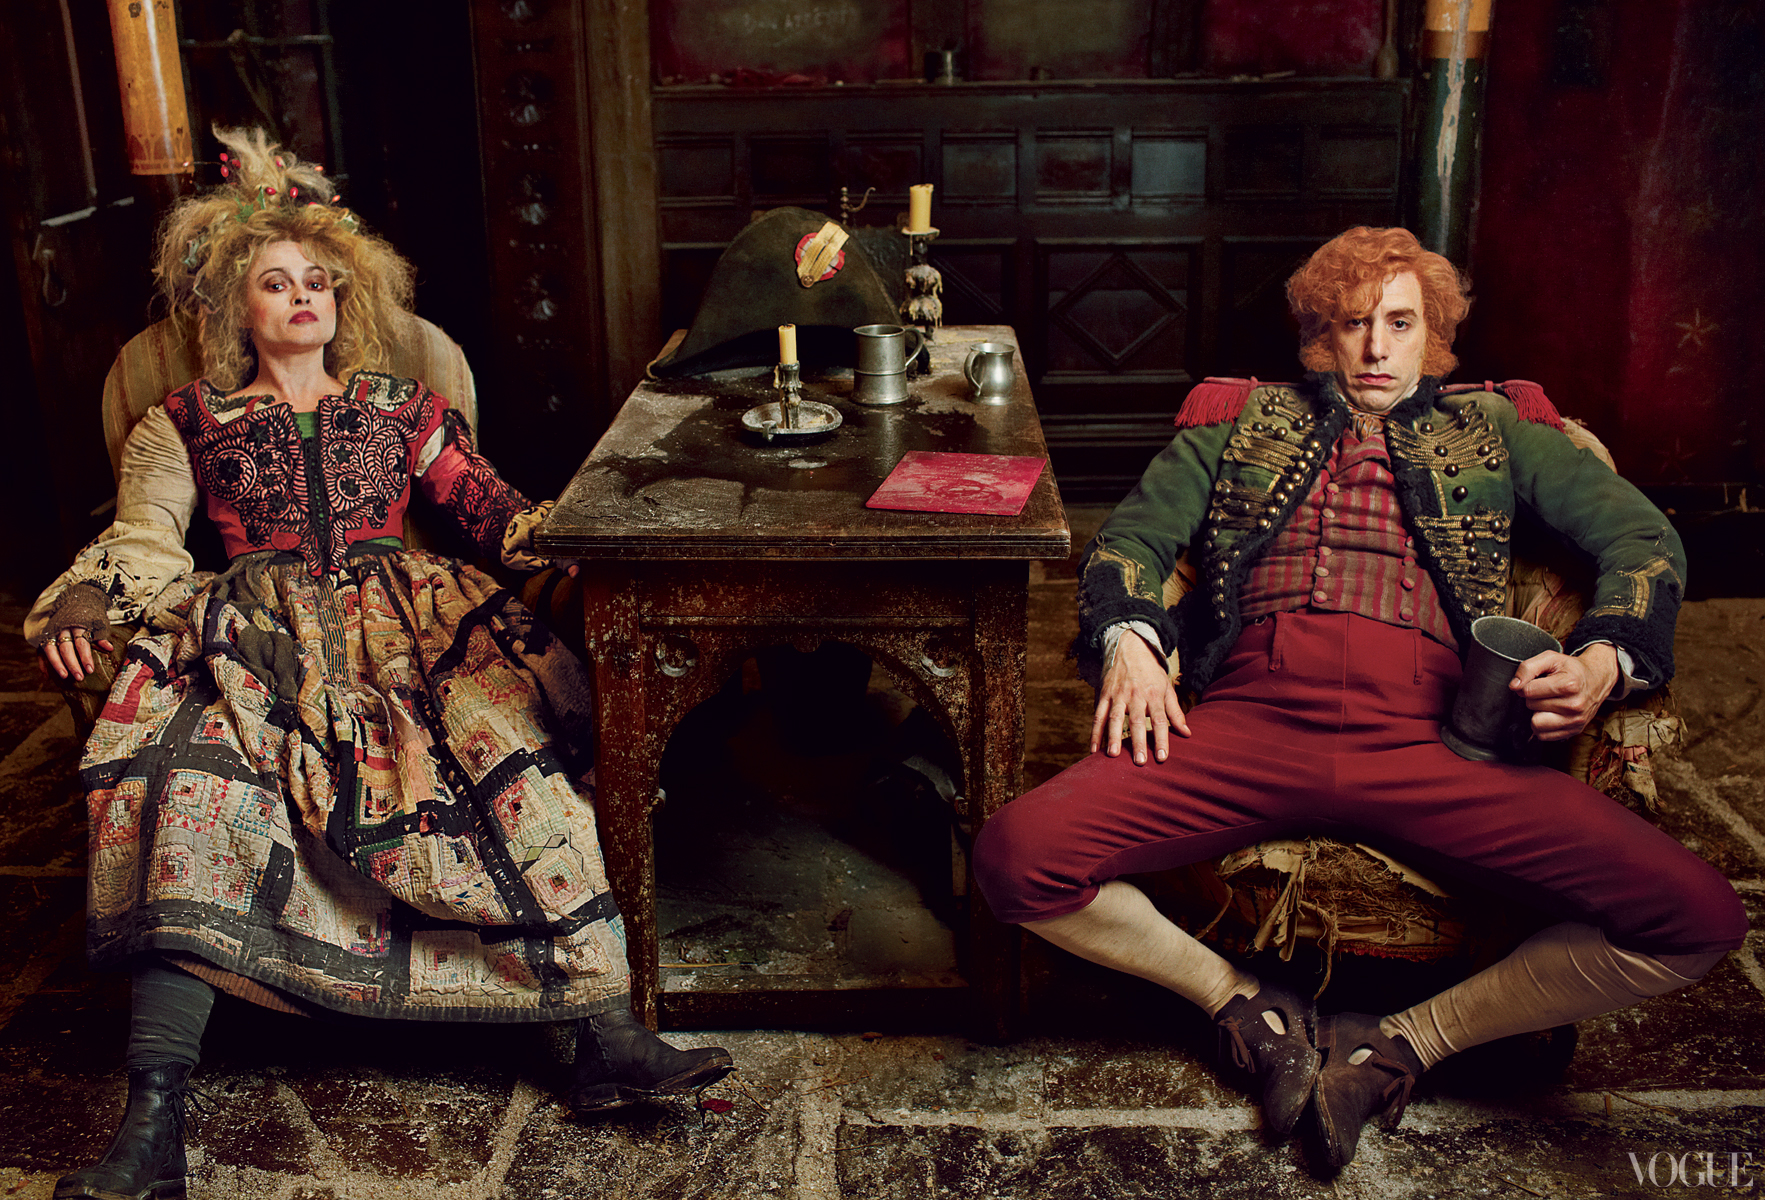 miserables thenardiers bonham carter baron cohen